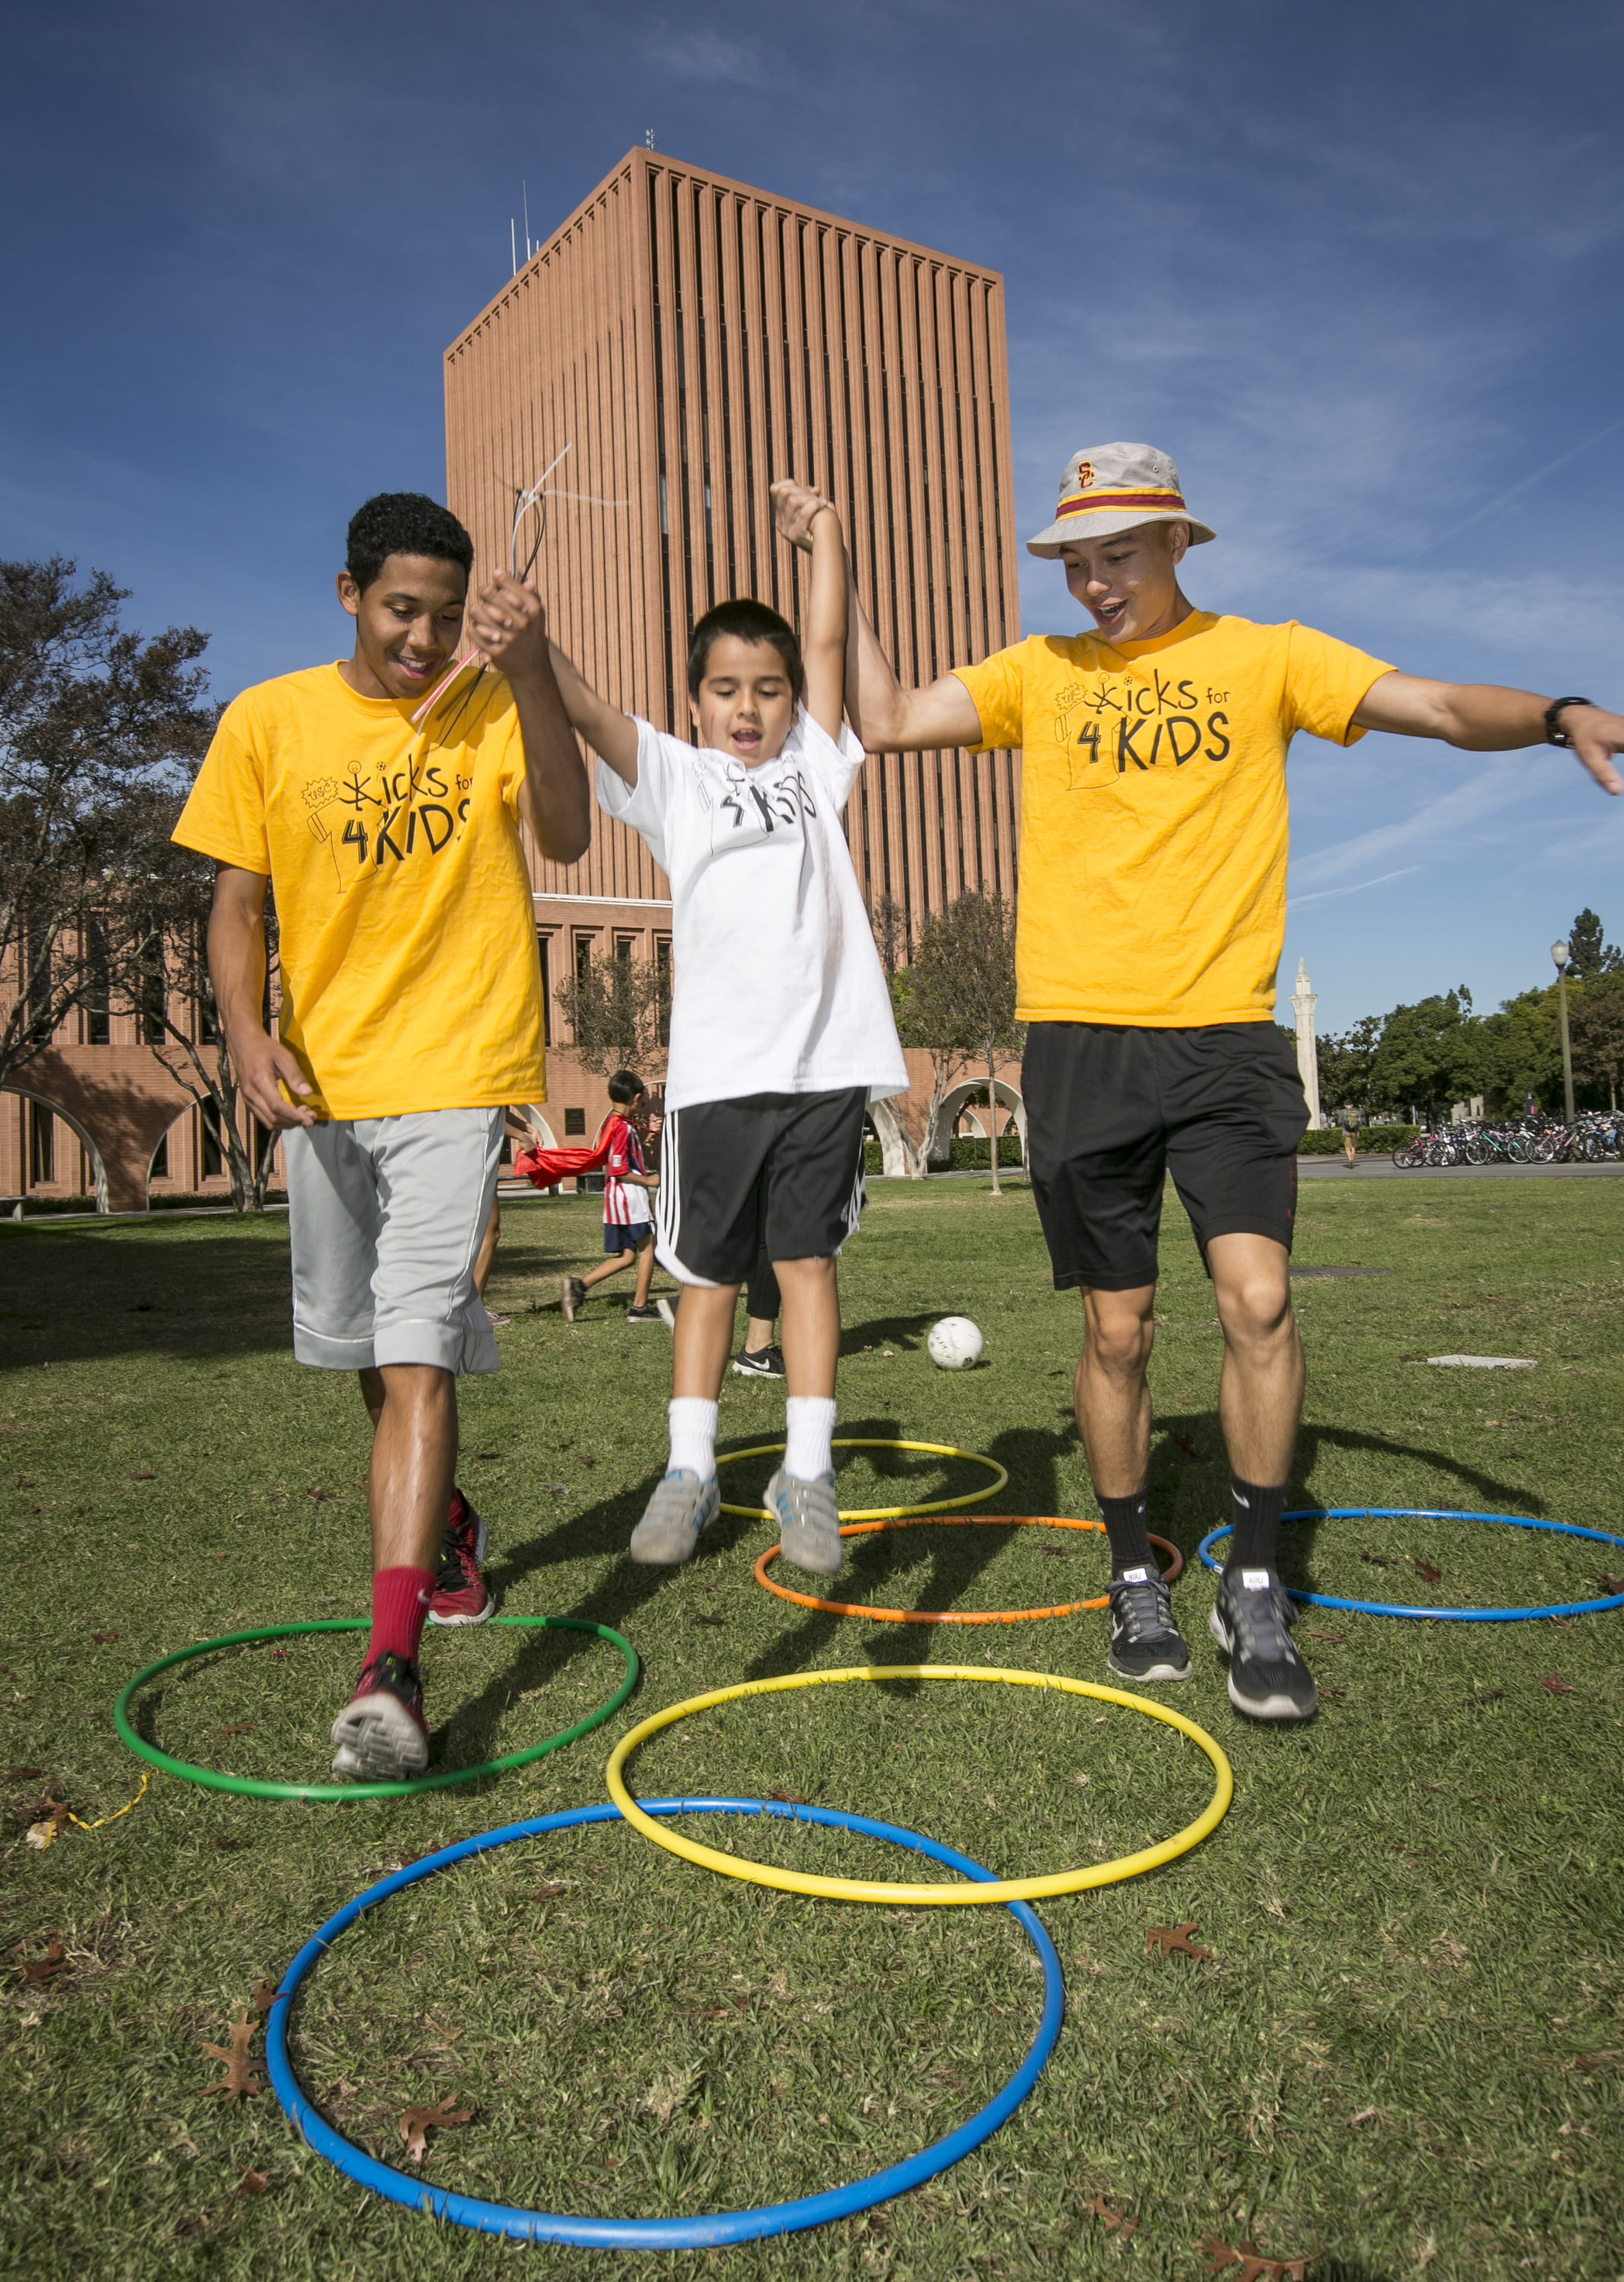 Bringing Sports To Children With Special Needs